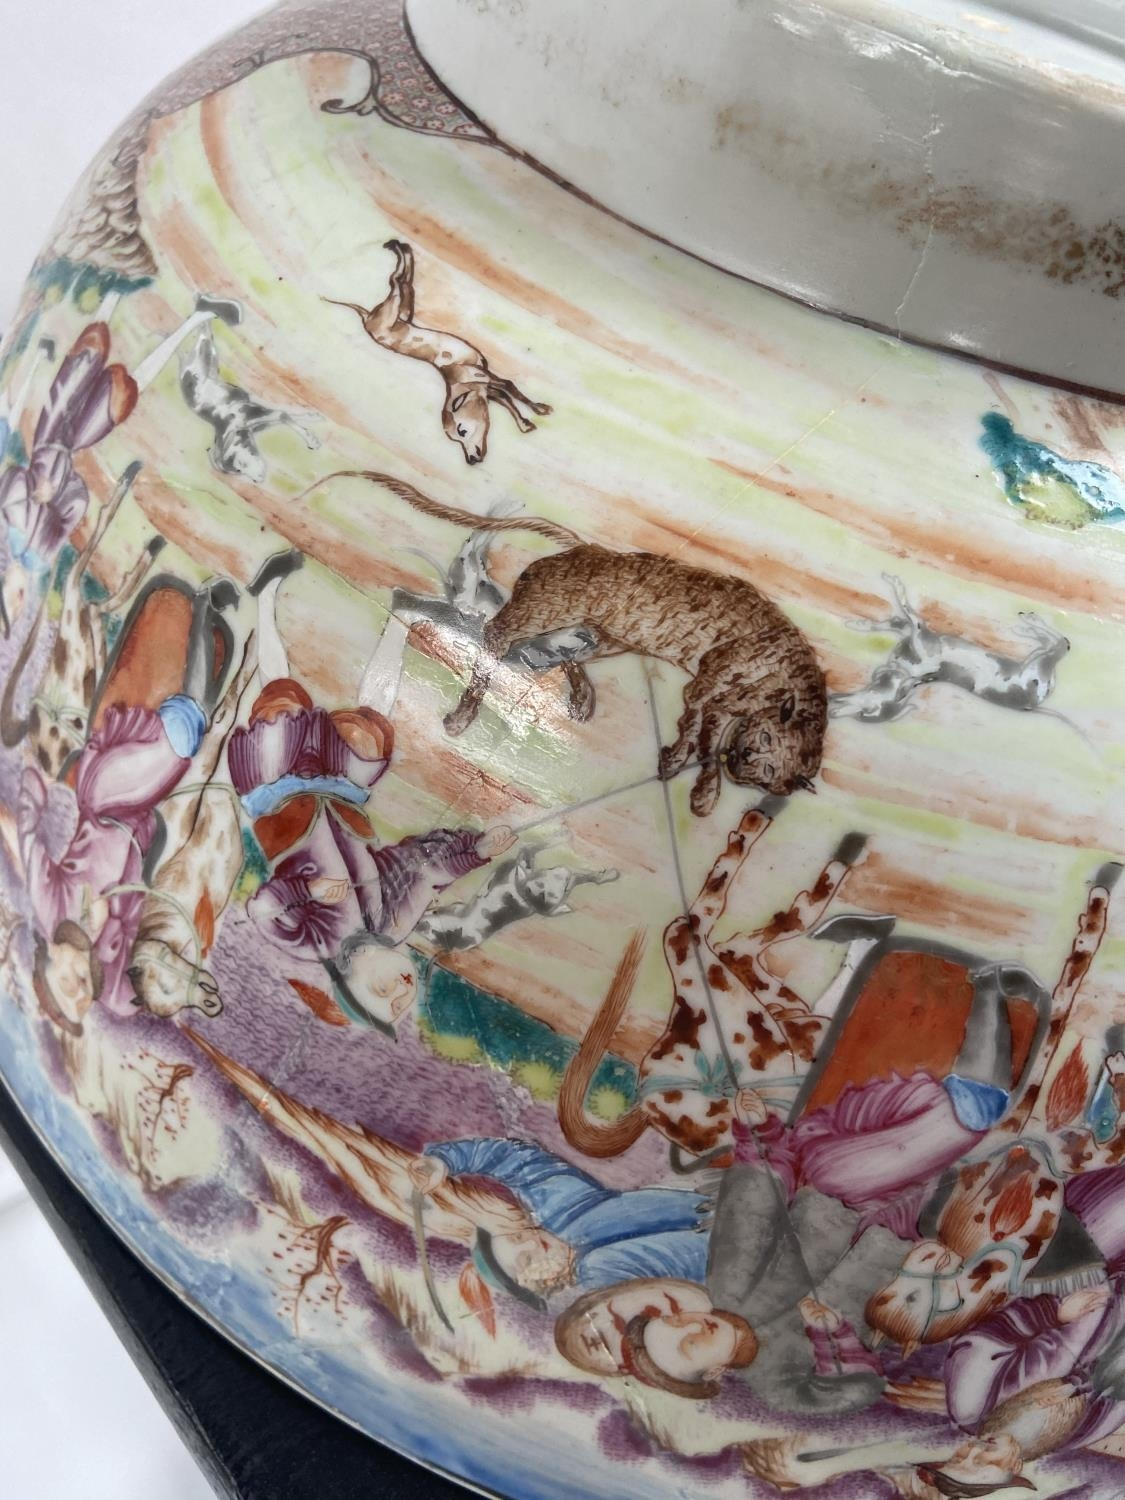 A LARGE 19TH CENTURY CHINESE HAND PAINTED BOWL. EXTERIOR DEPICTS CHINESE HUNTING SCENE PANELS. THE - Image 36 of 39